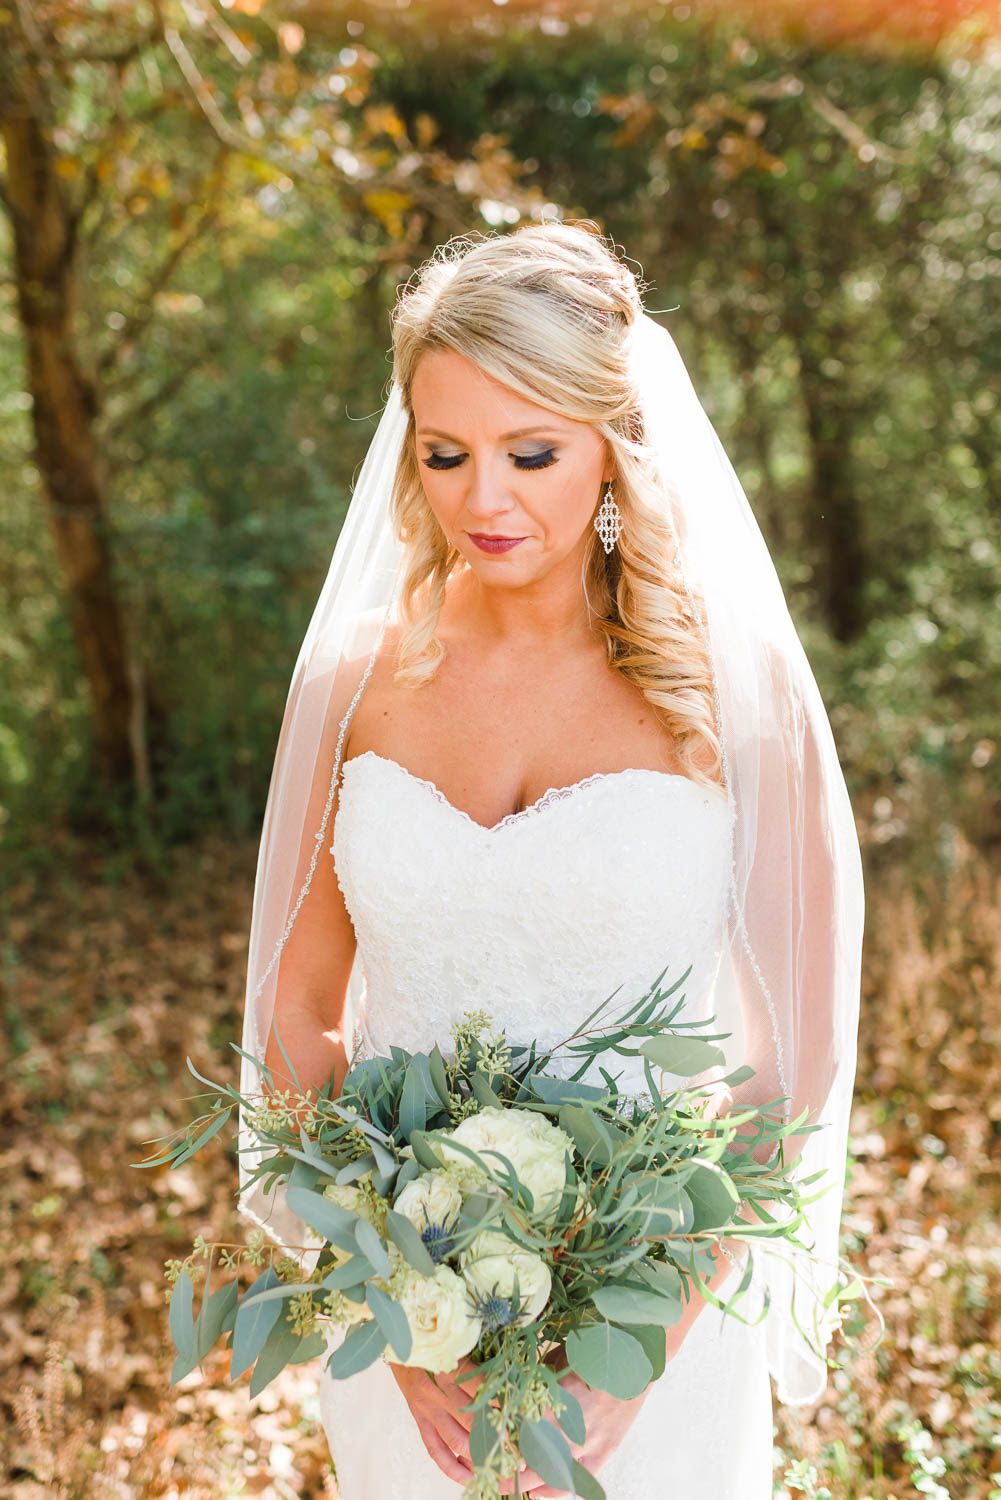 lovely bride outside with greenery bouquet and veil